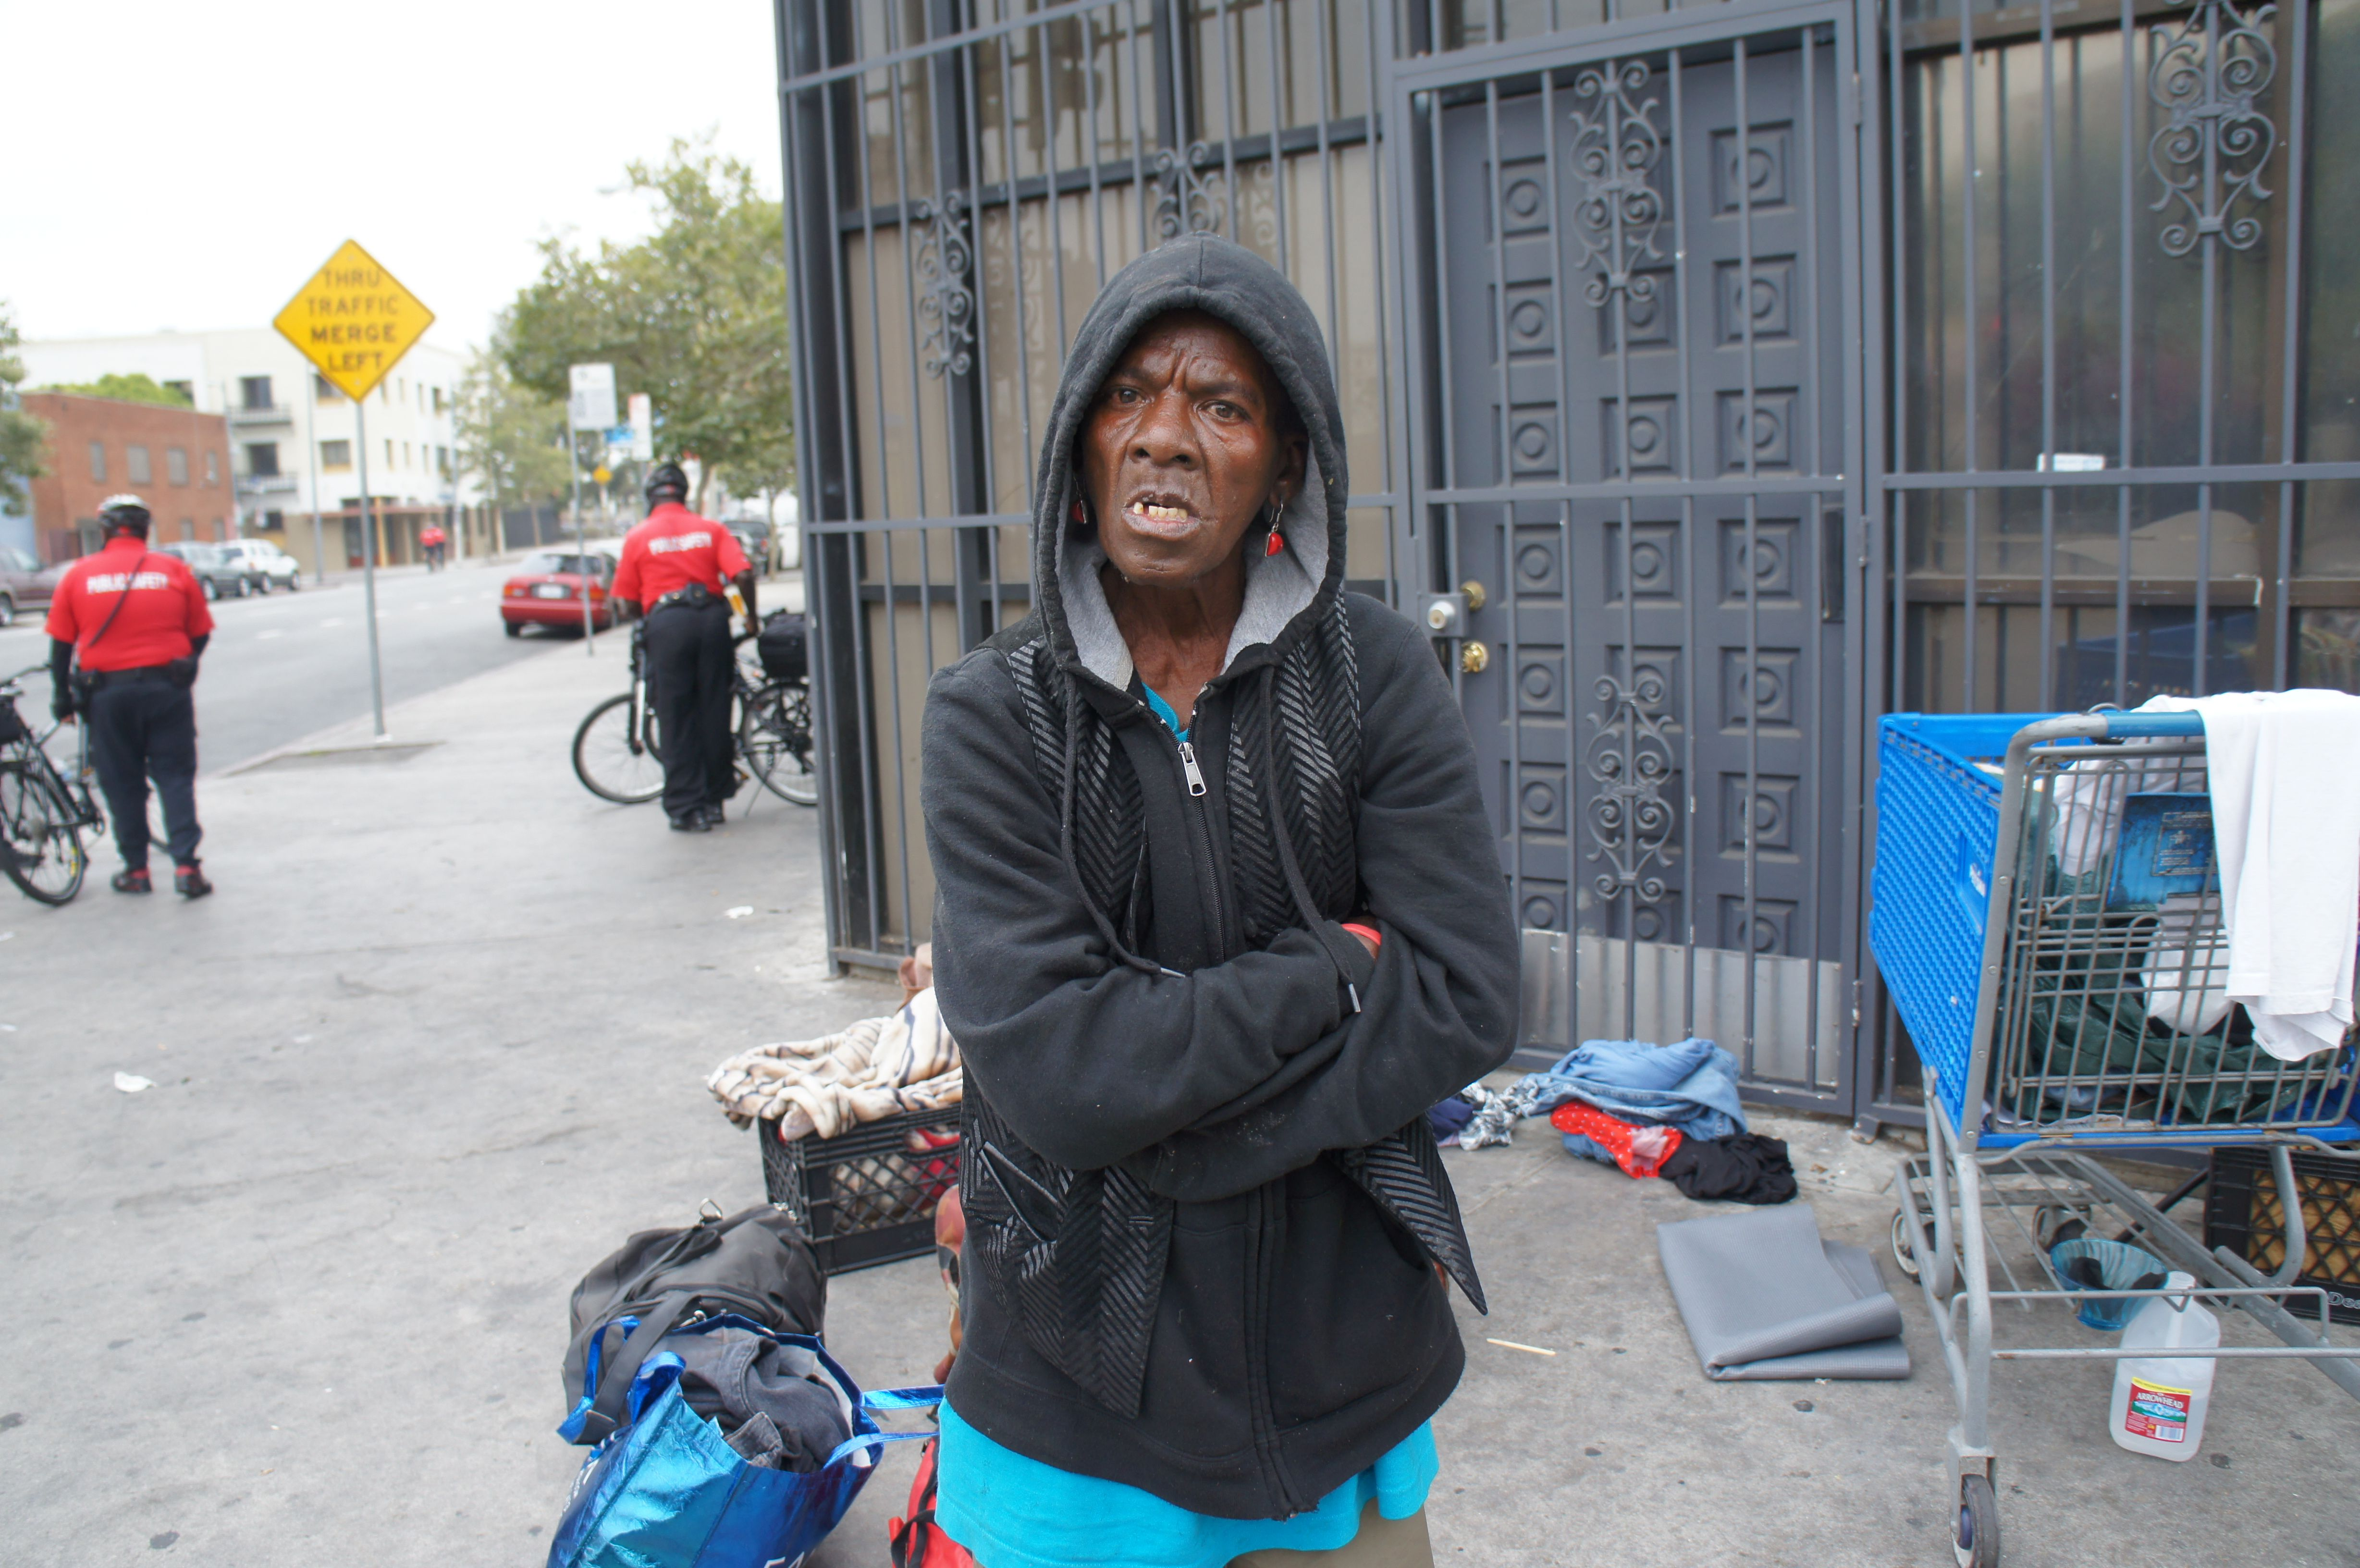 Cleaning Up Skid Row Skid Row Inner City Poverty